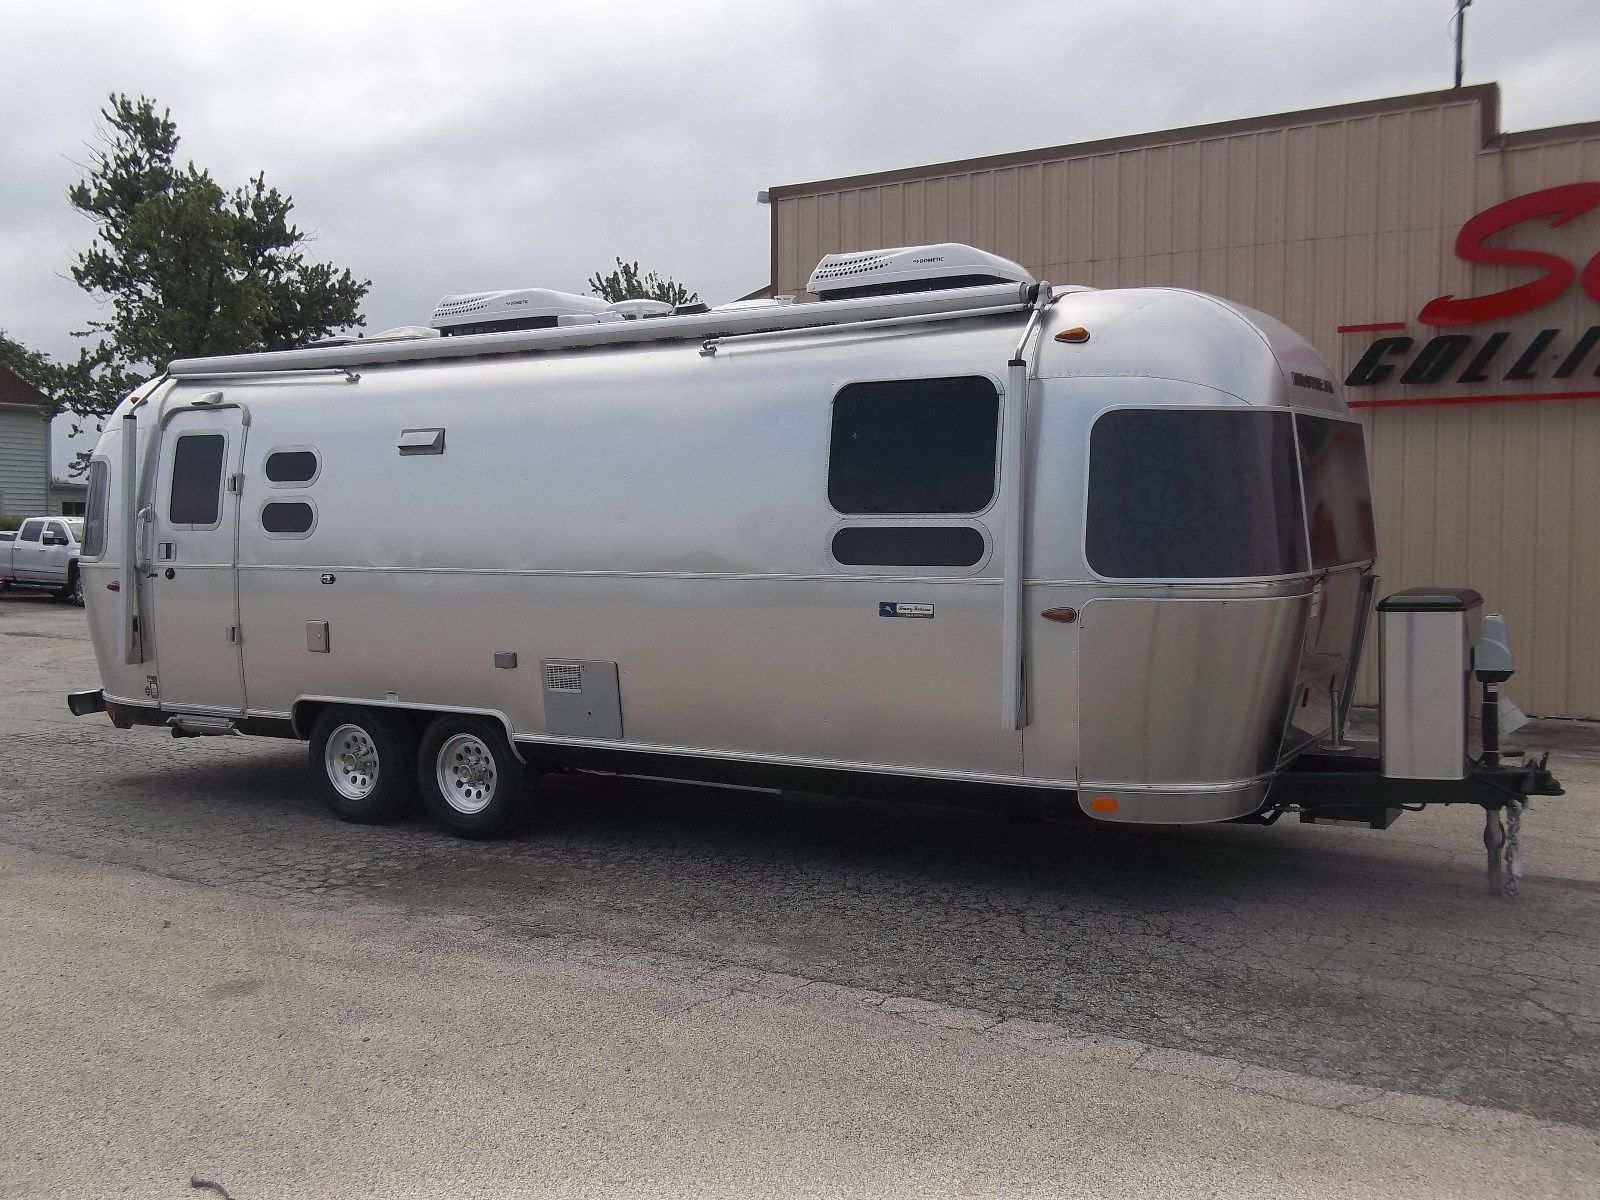 fresh 2017 Airstream Tommy Bahama camper for sale